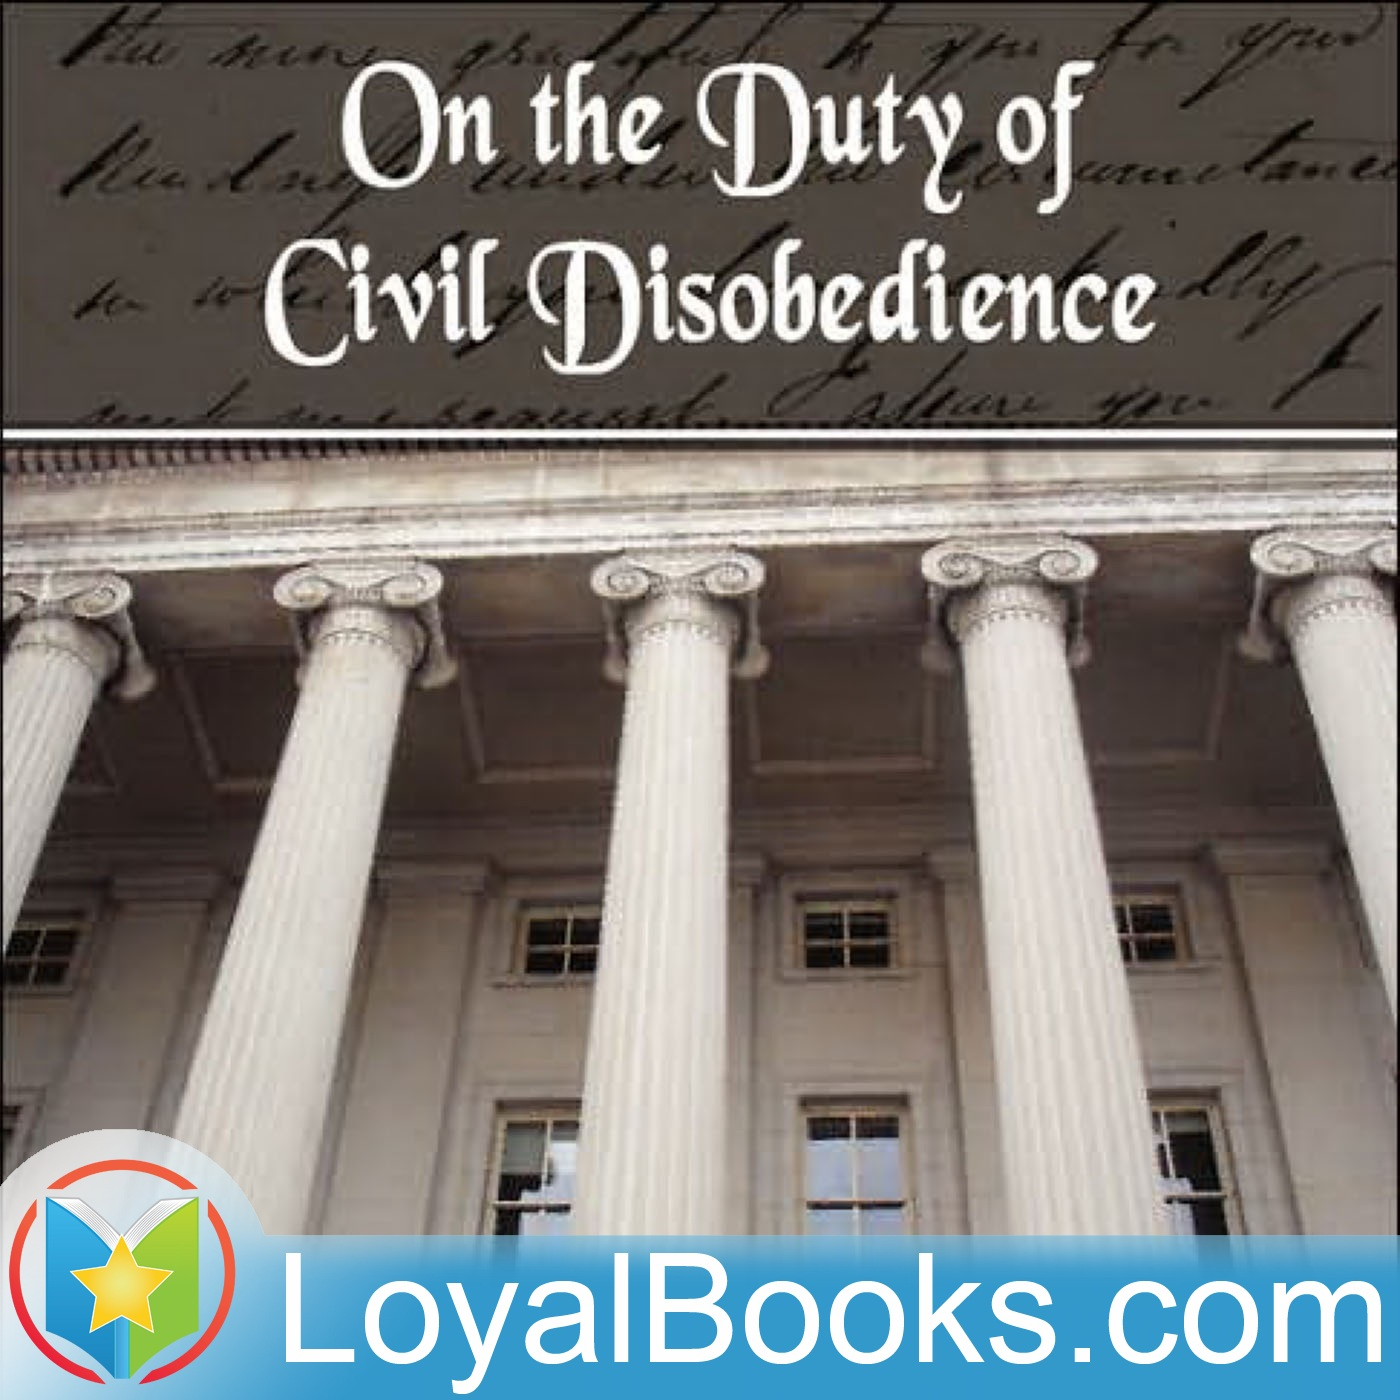 civil disobedience as a tool against injustice in society Perpetual acquiescence: a reading of thoreau's to the government's machine of injustice disobedience against civil society was tool opens up city hall to.